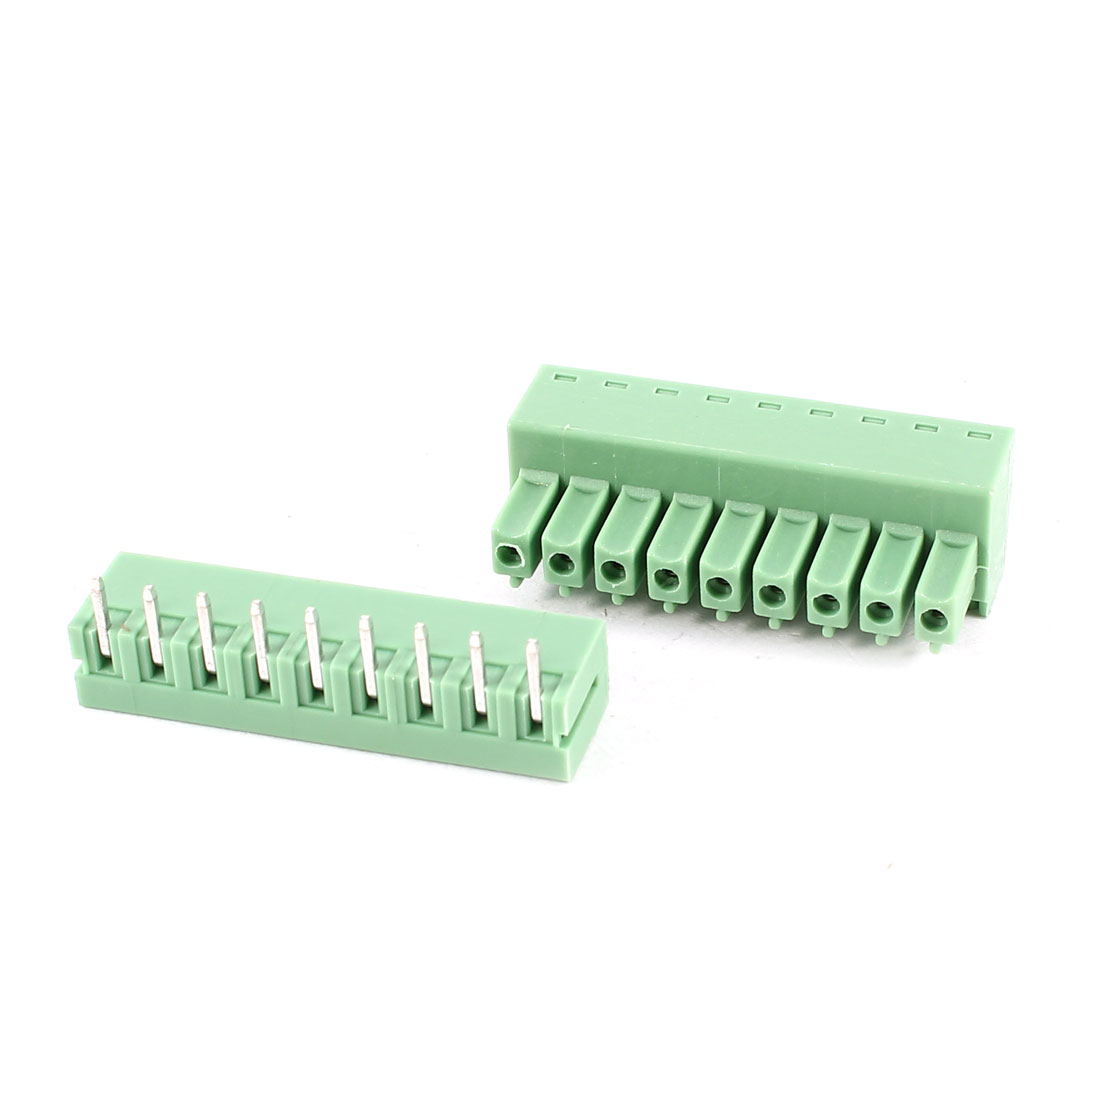 Green 9Pin 3.81mm Spacing PCB Screw Terminal Block Connector AC 300V 8A AWG22-16